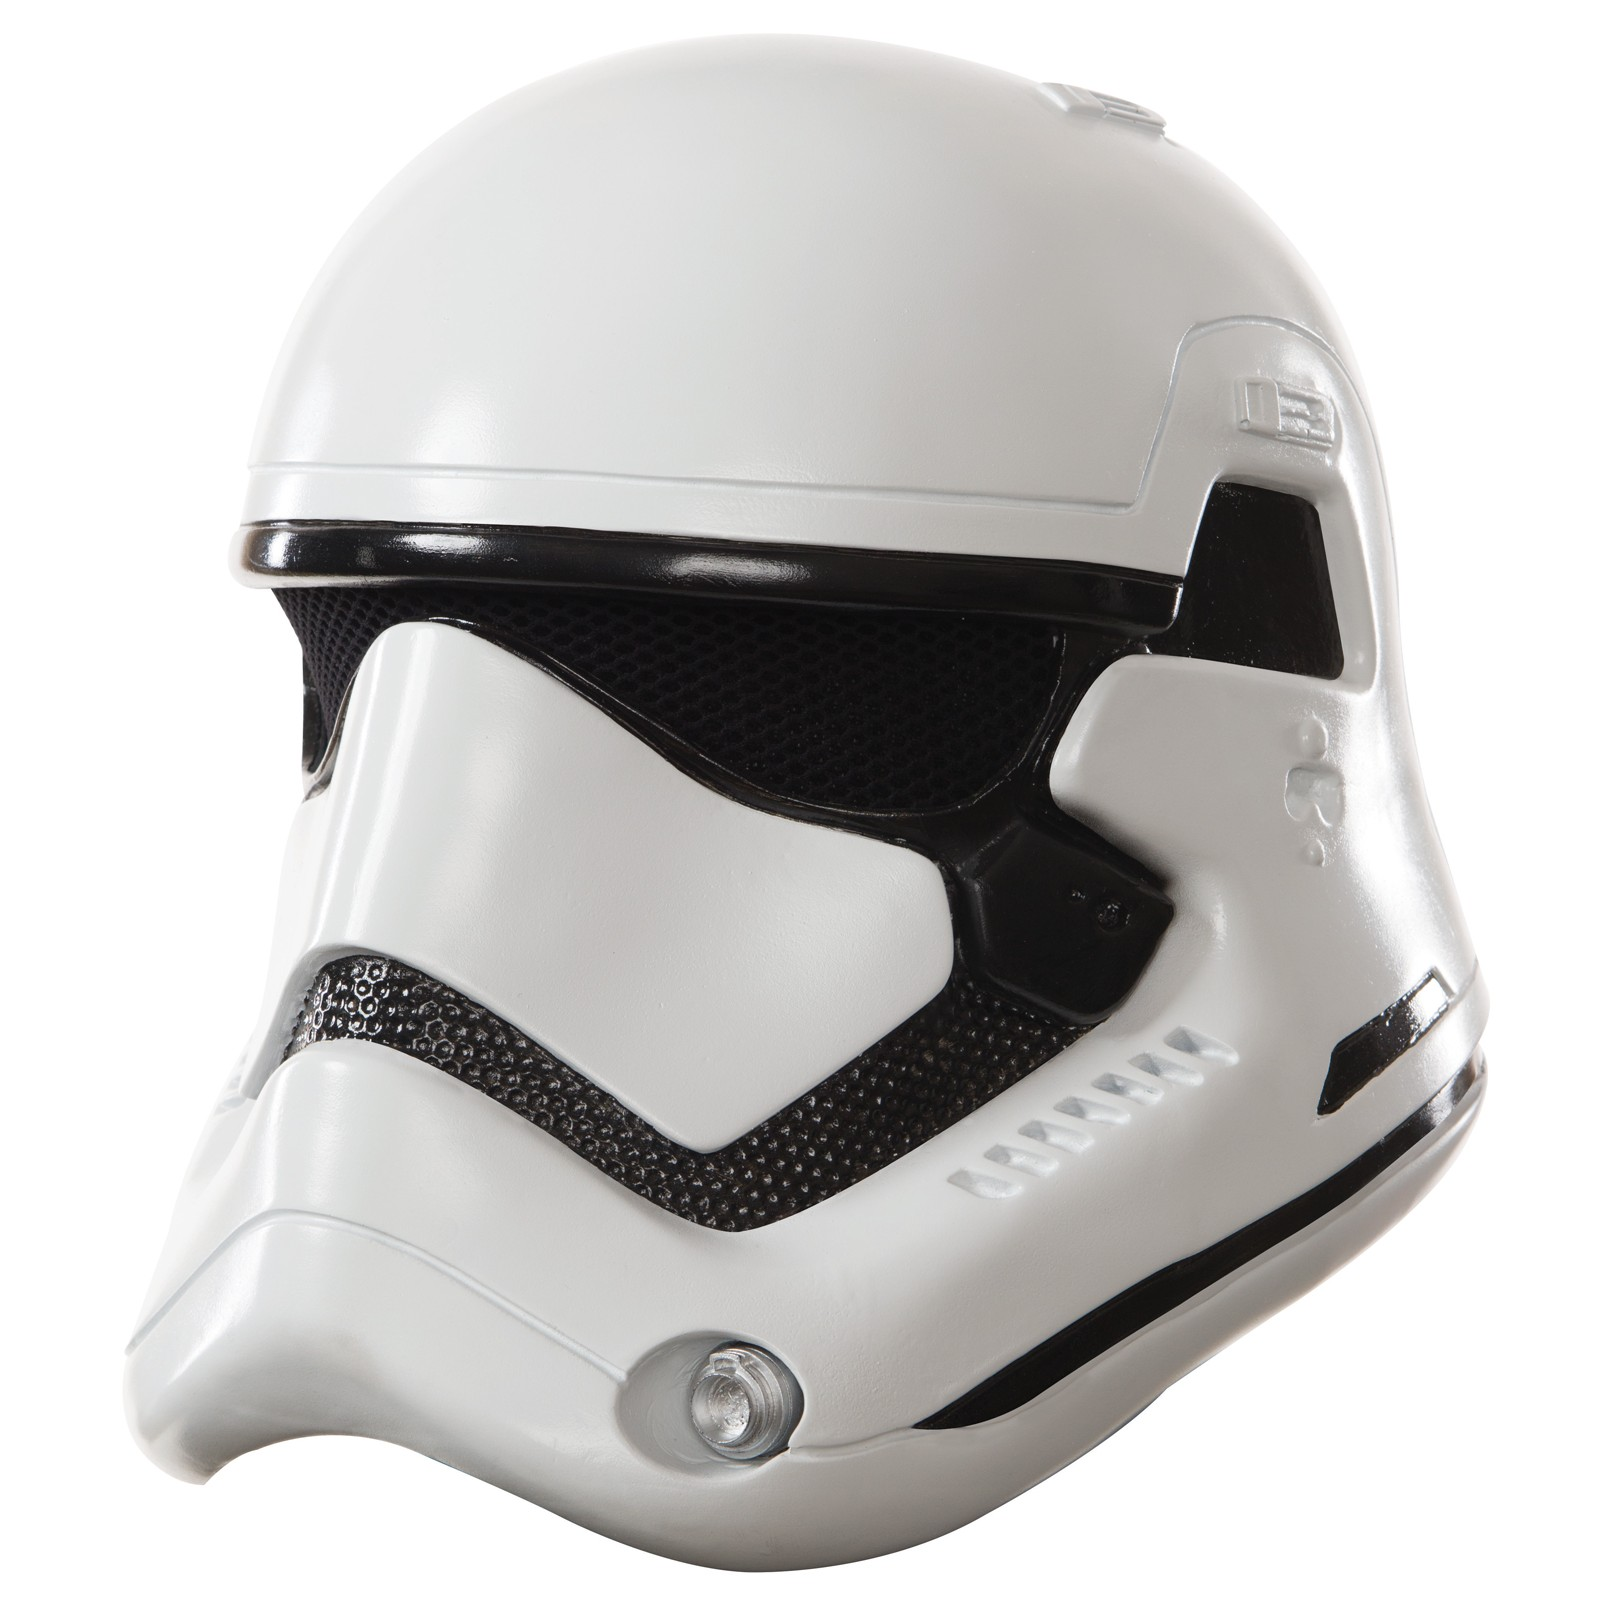 Star Wars: The Force Awakens - Stormtrooper Child Full Helmet